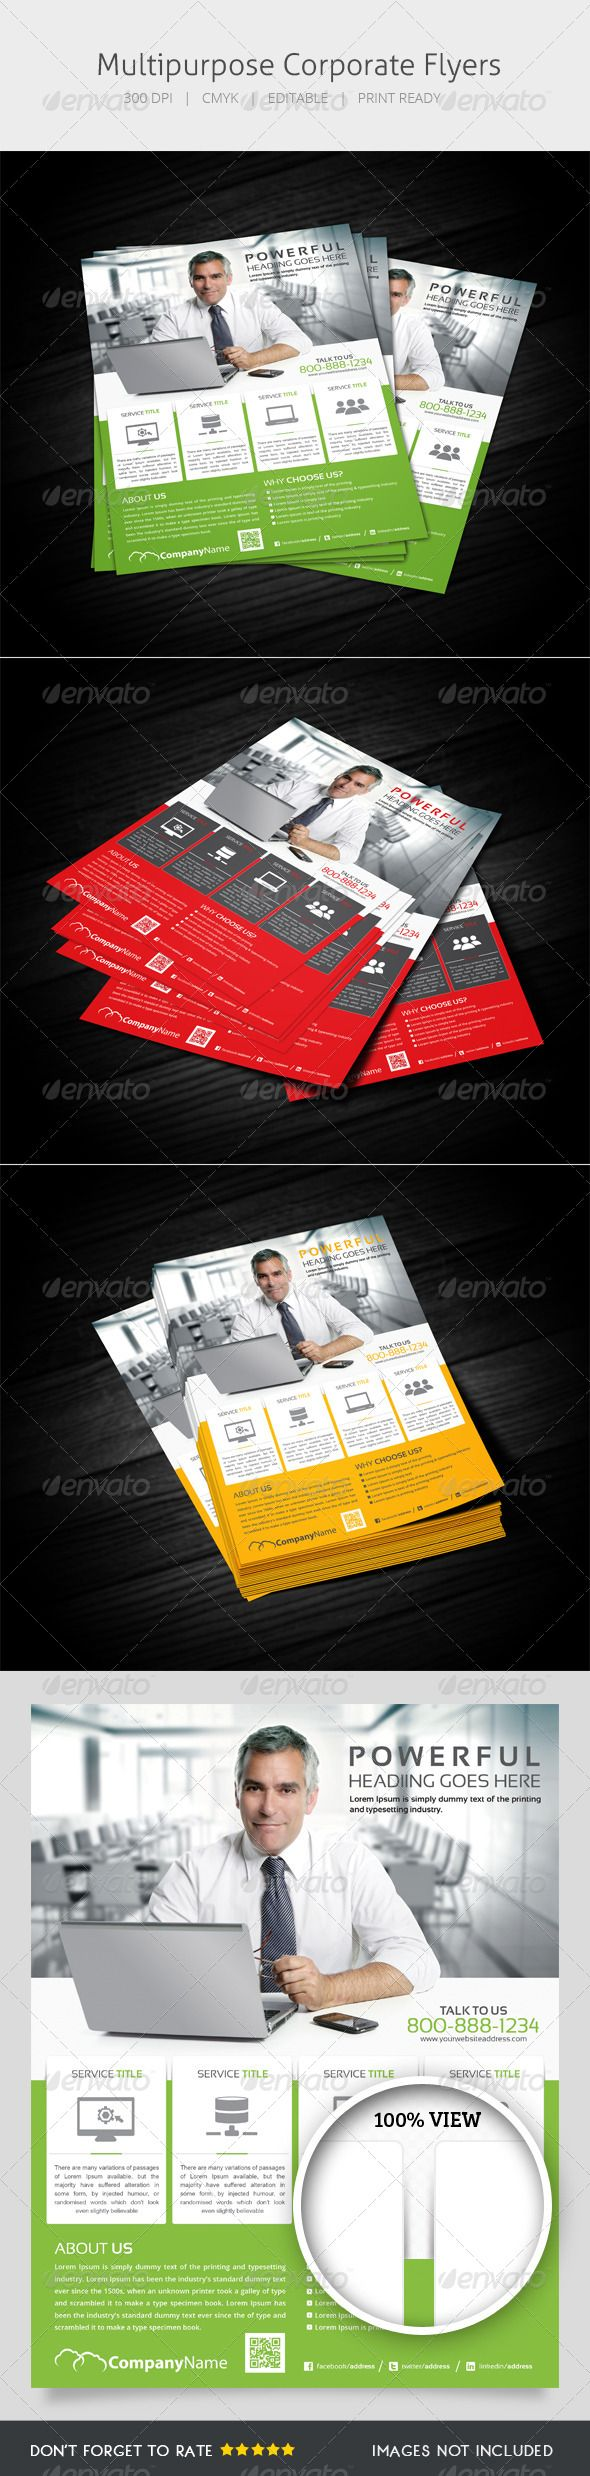 Multipurpose Flyer - Corporate Flyers